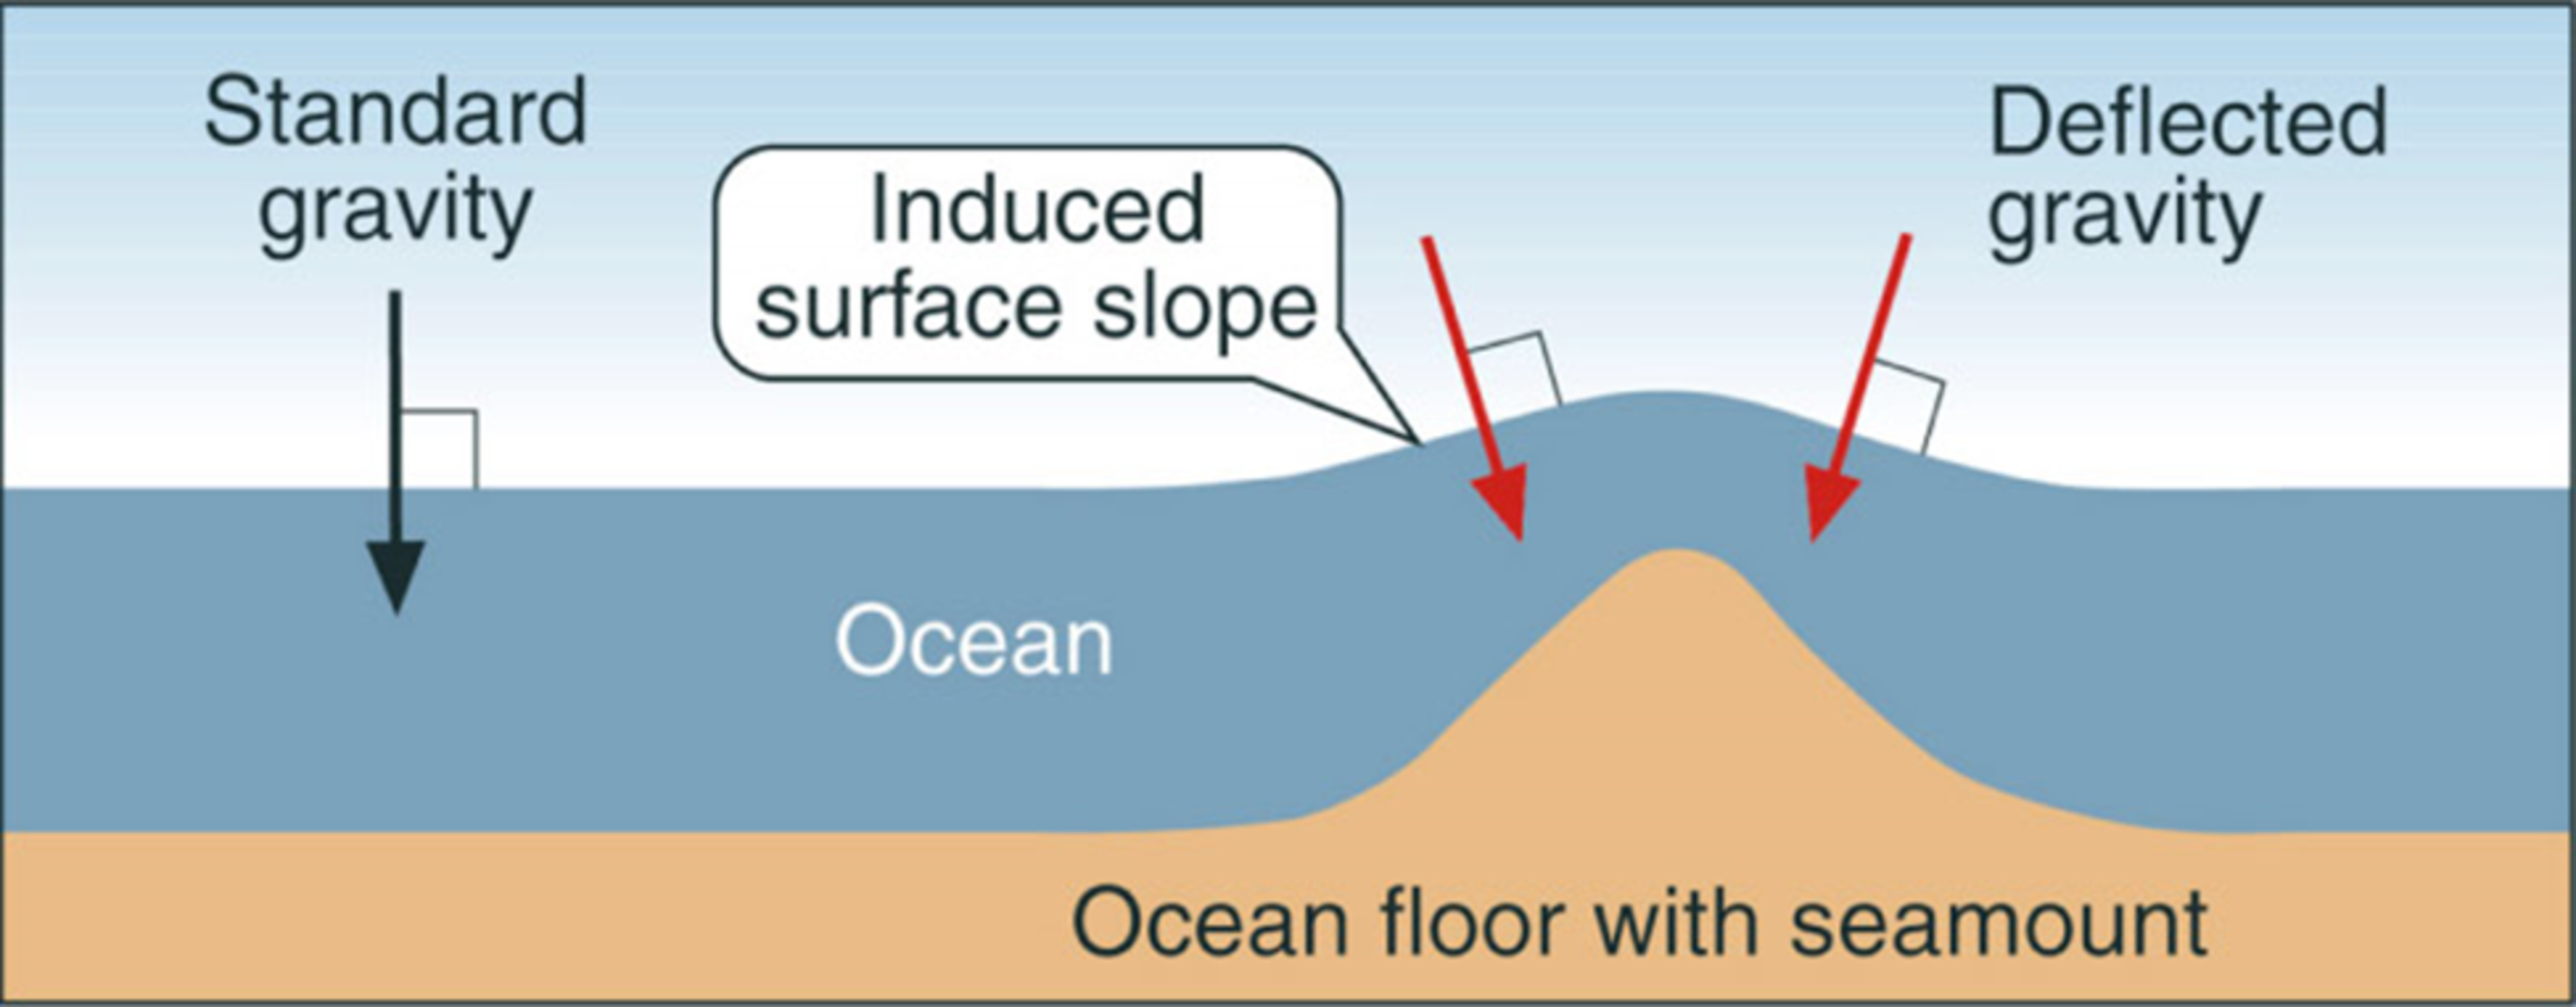 How gravity and sea level interact